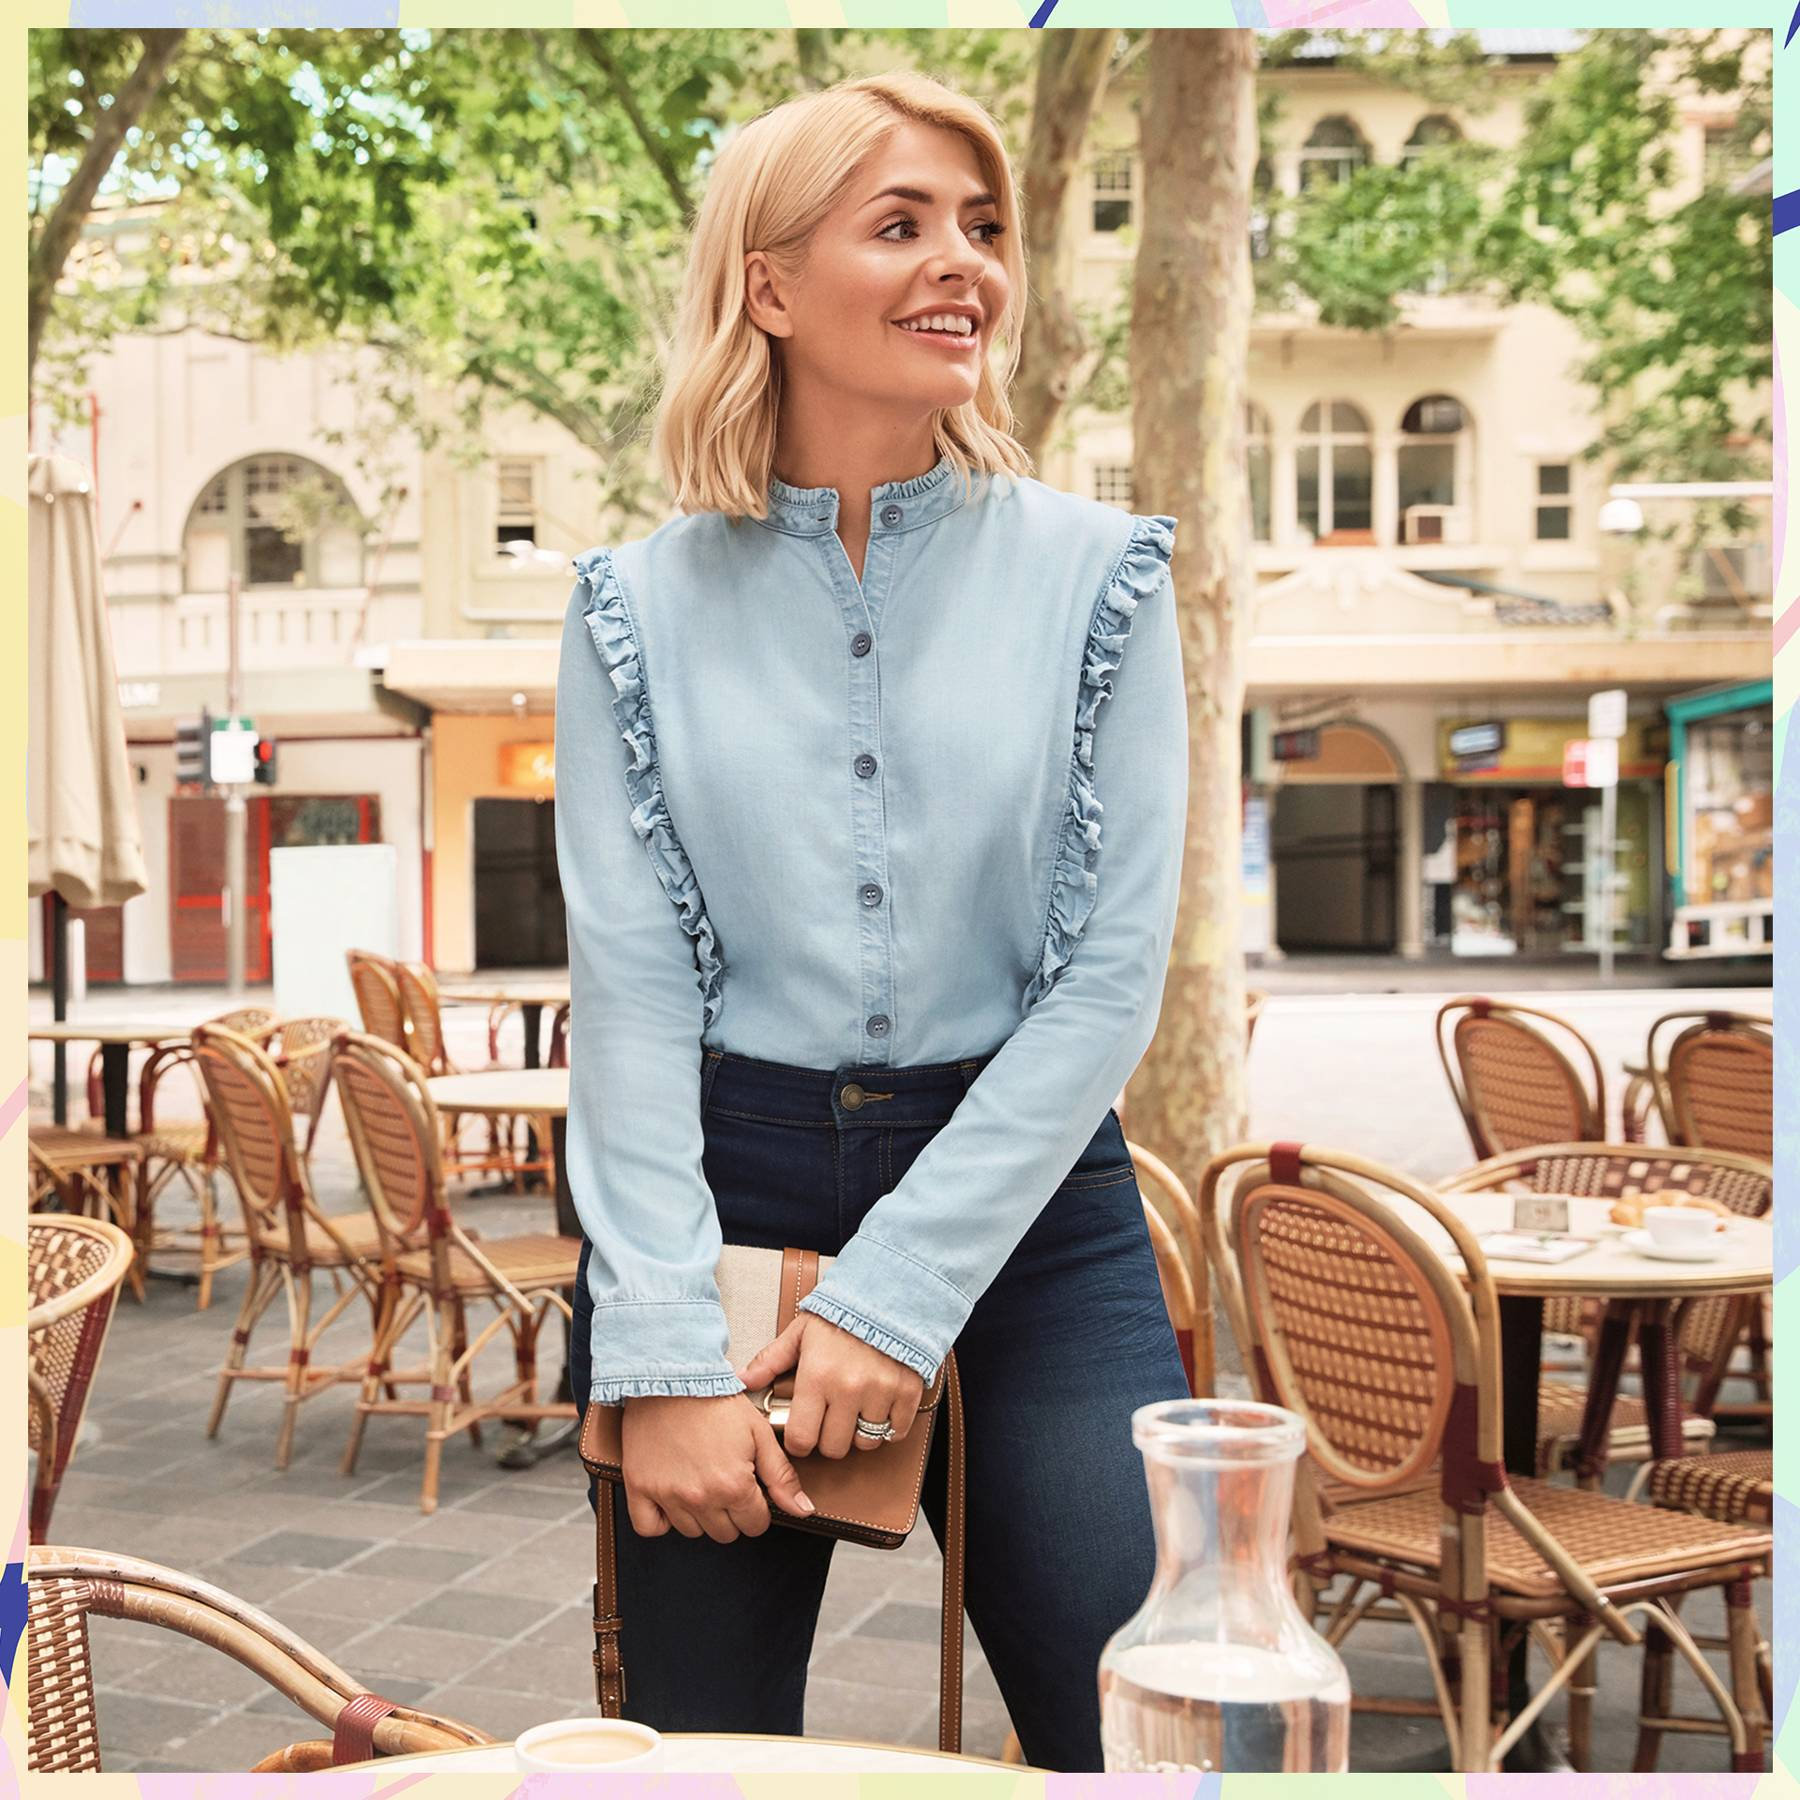 ac20a6294 Holly Willoughby's New M&S Denim Edit Has Landed | Glamour UK